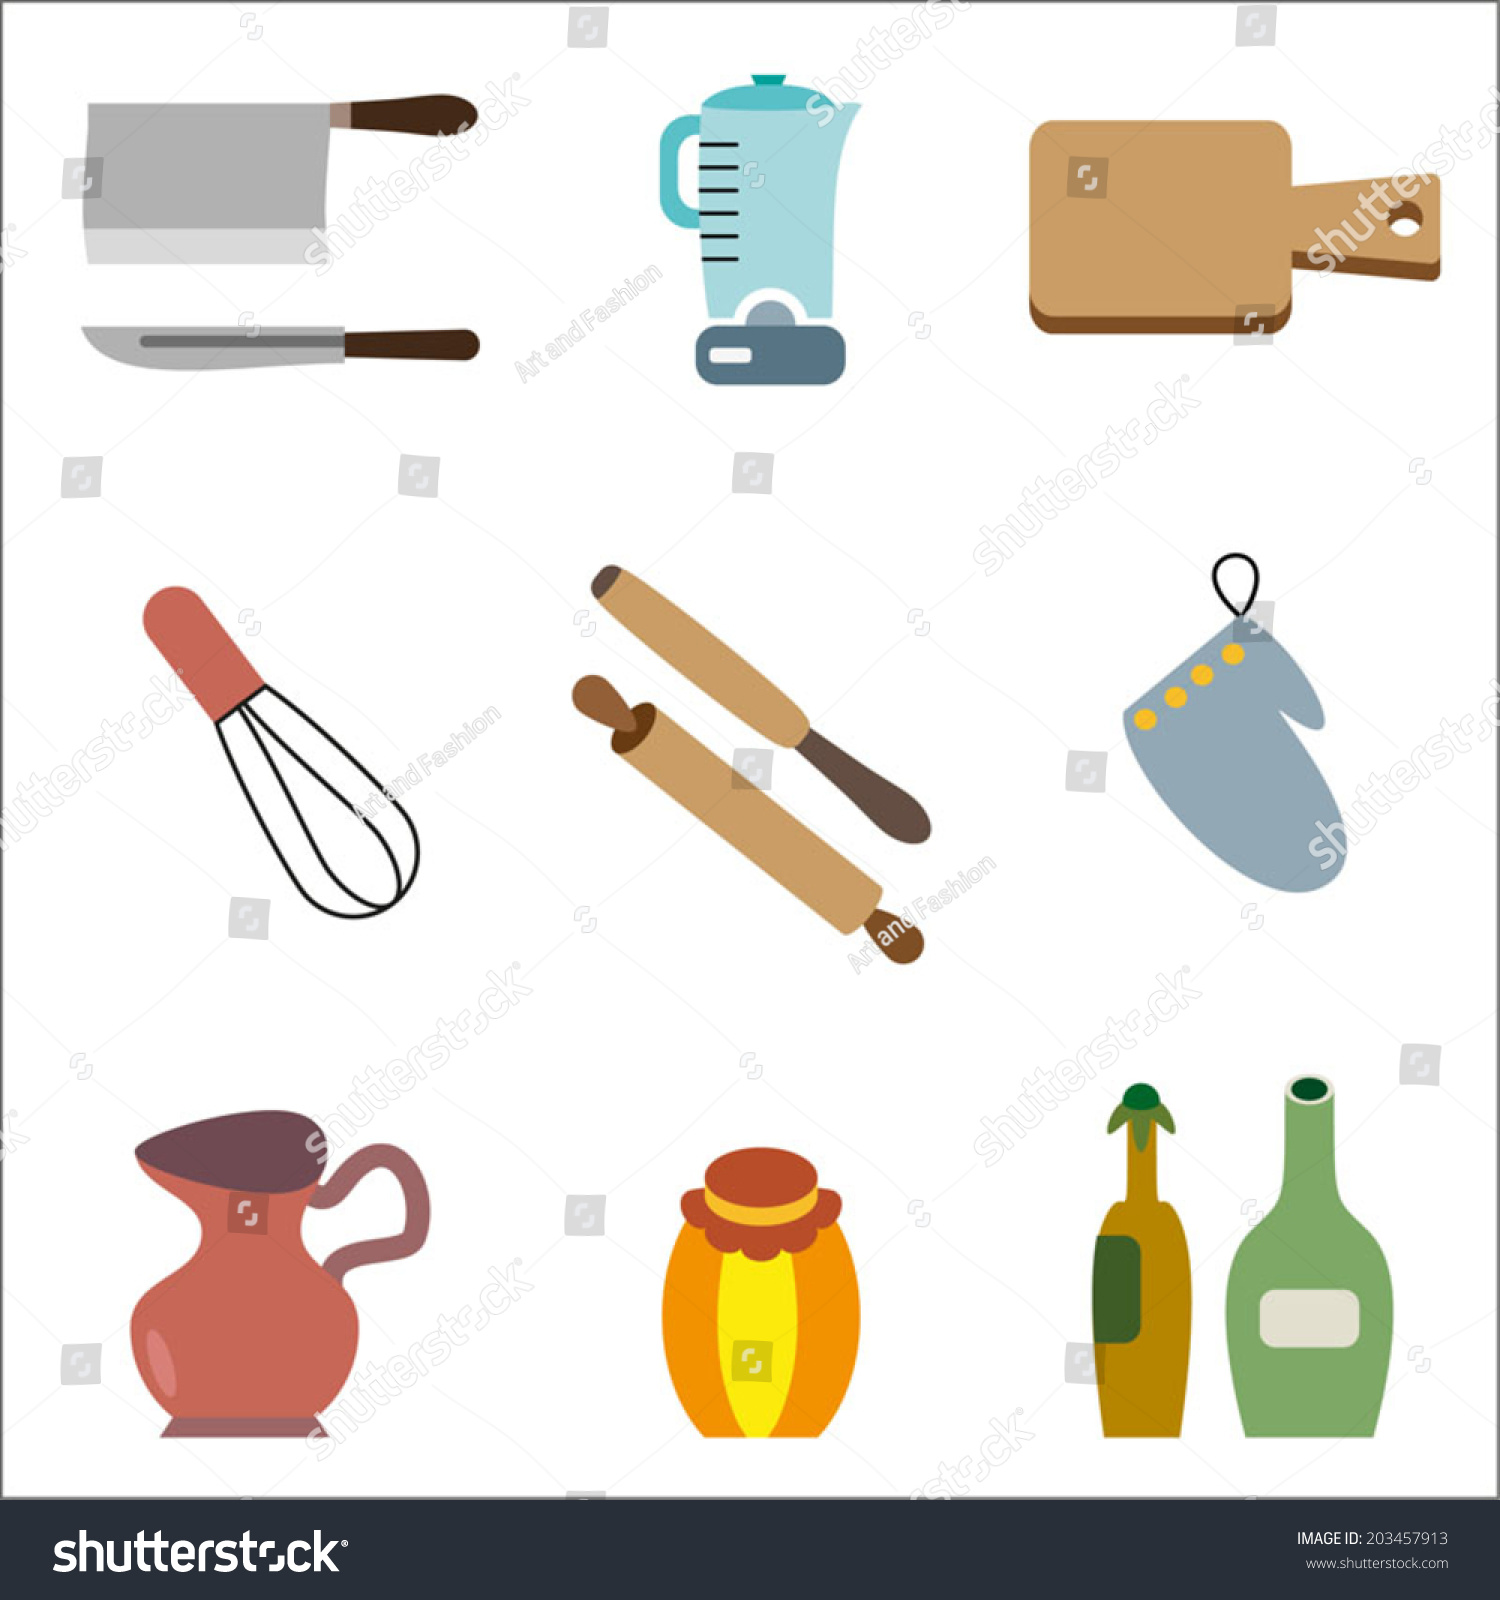 c8e3173012 Kitchen Cooking Icons Set Cooking Utensils Stock Vector (Royalty ...